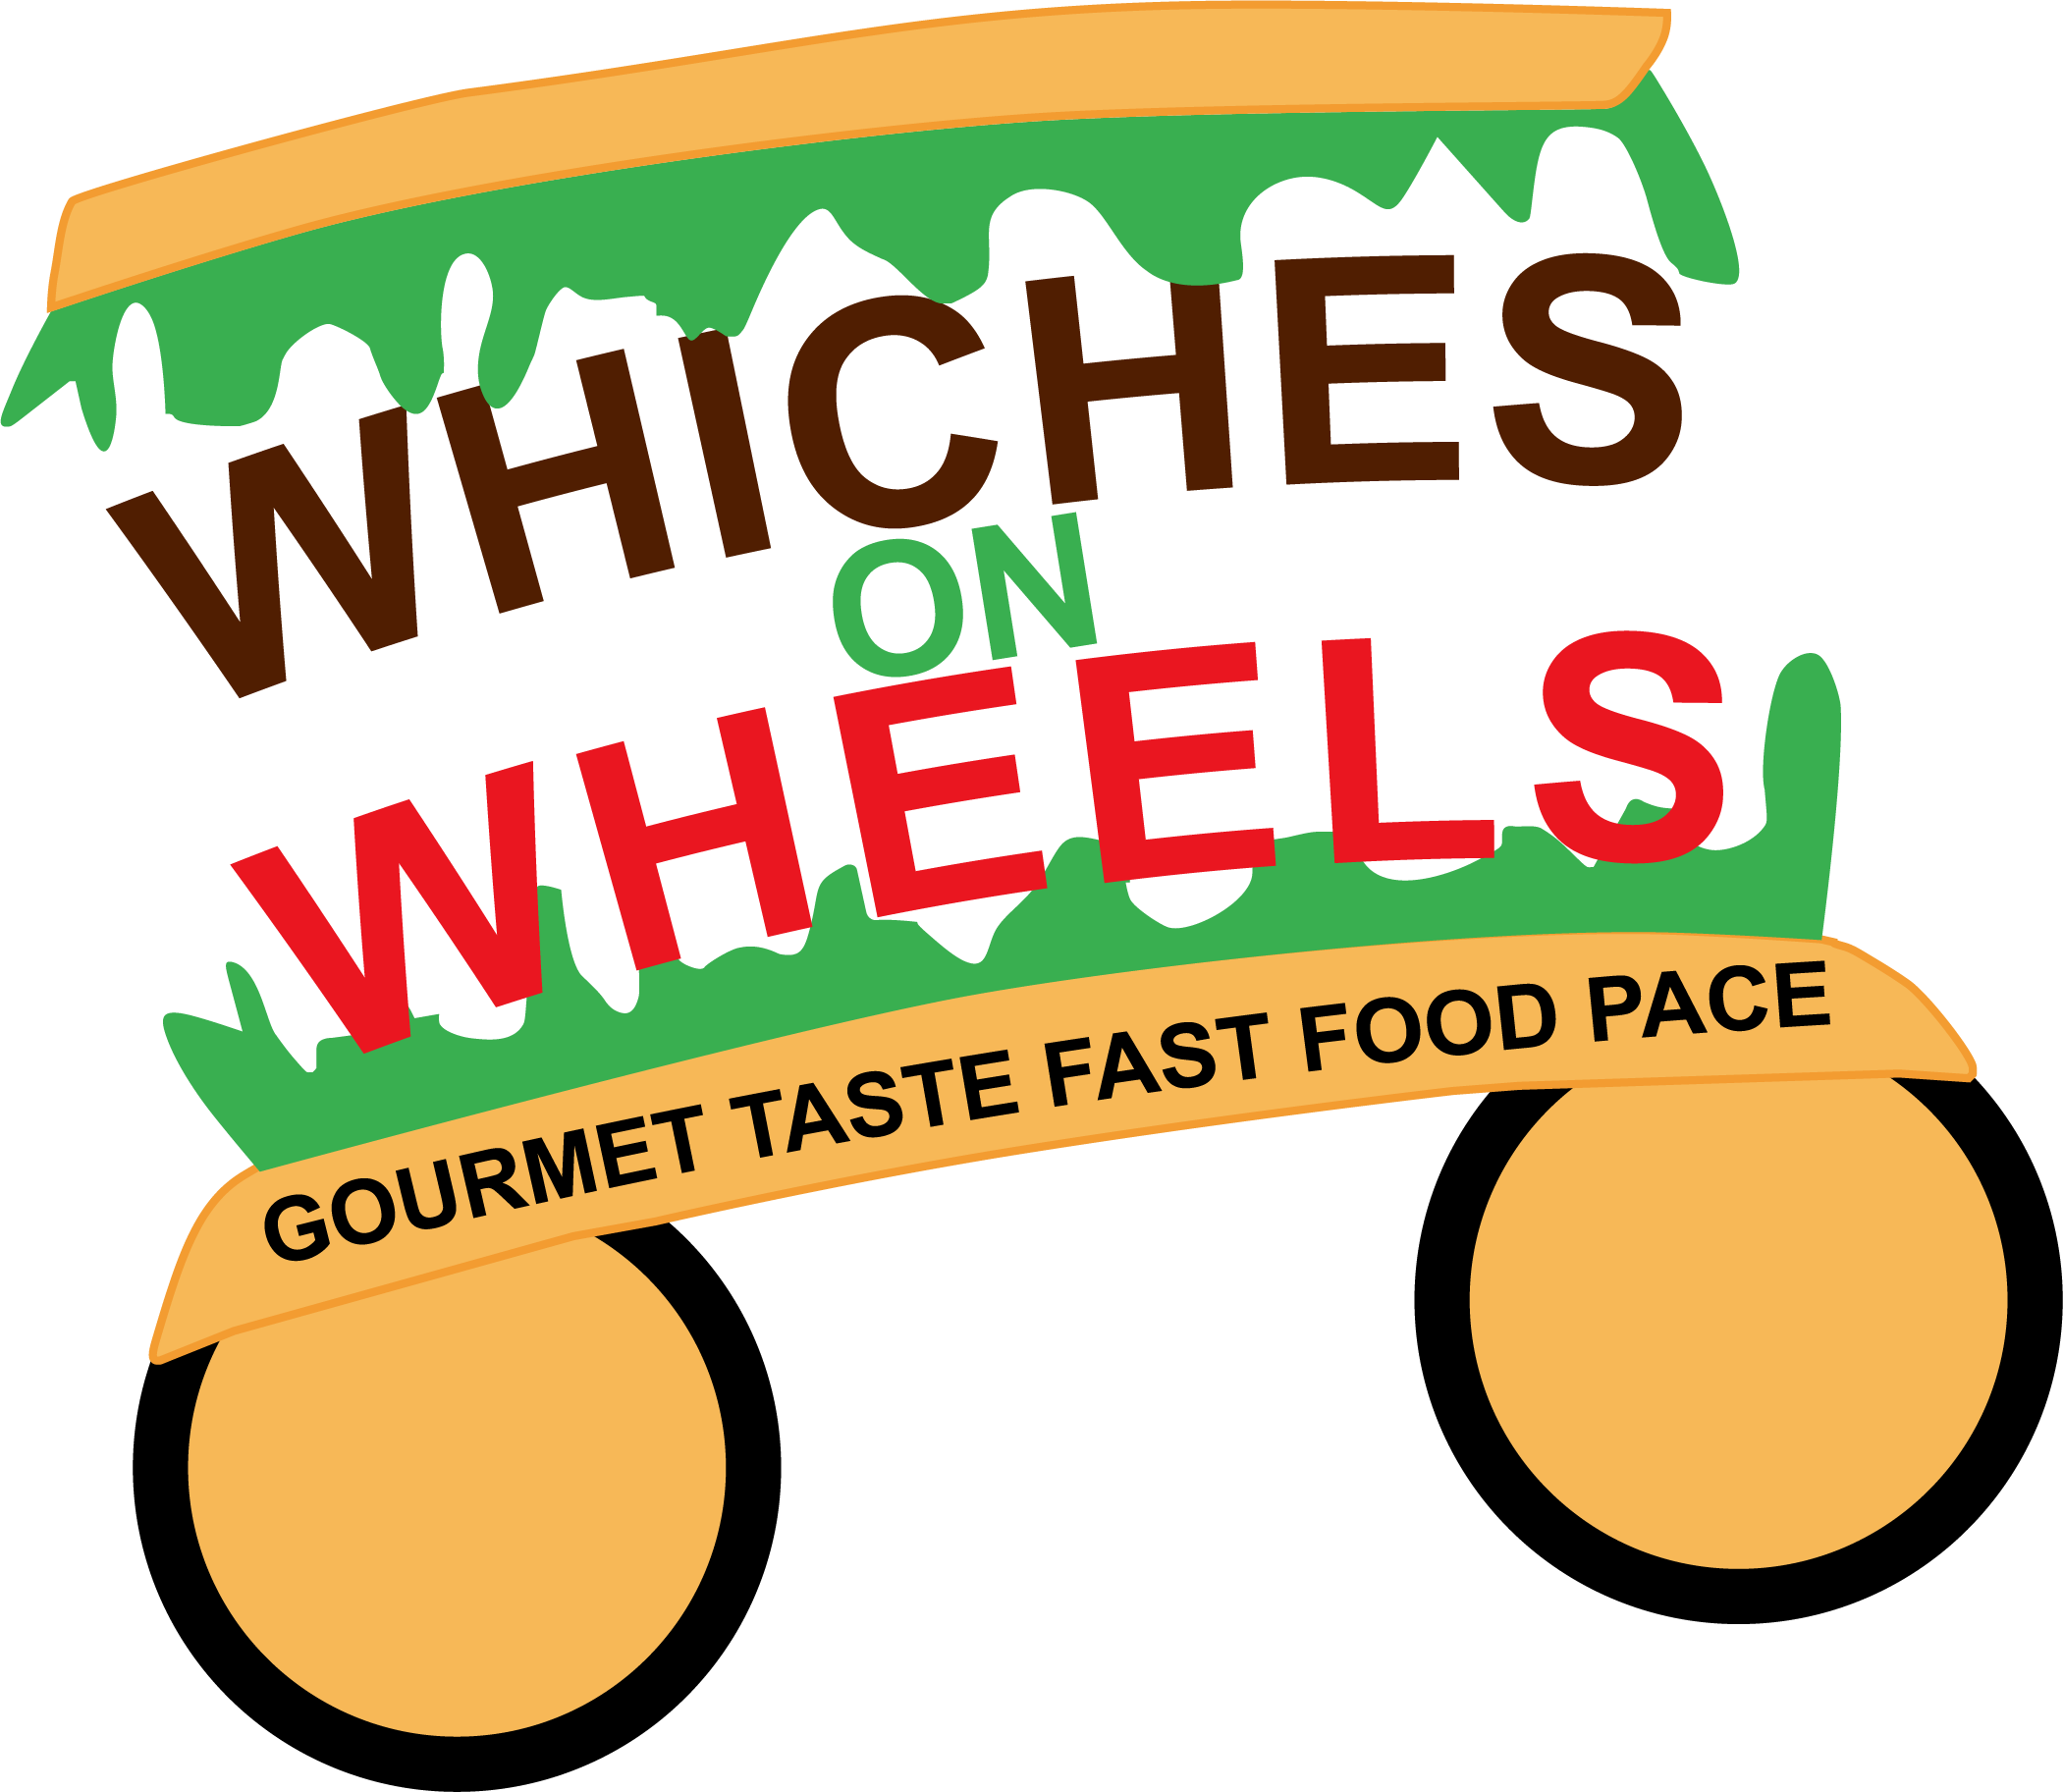 Whiches on wheels truck. Wheel clipart food